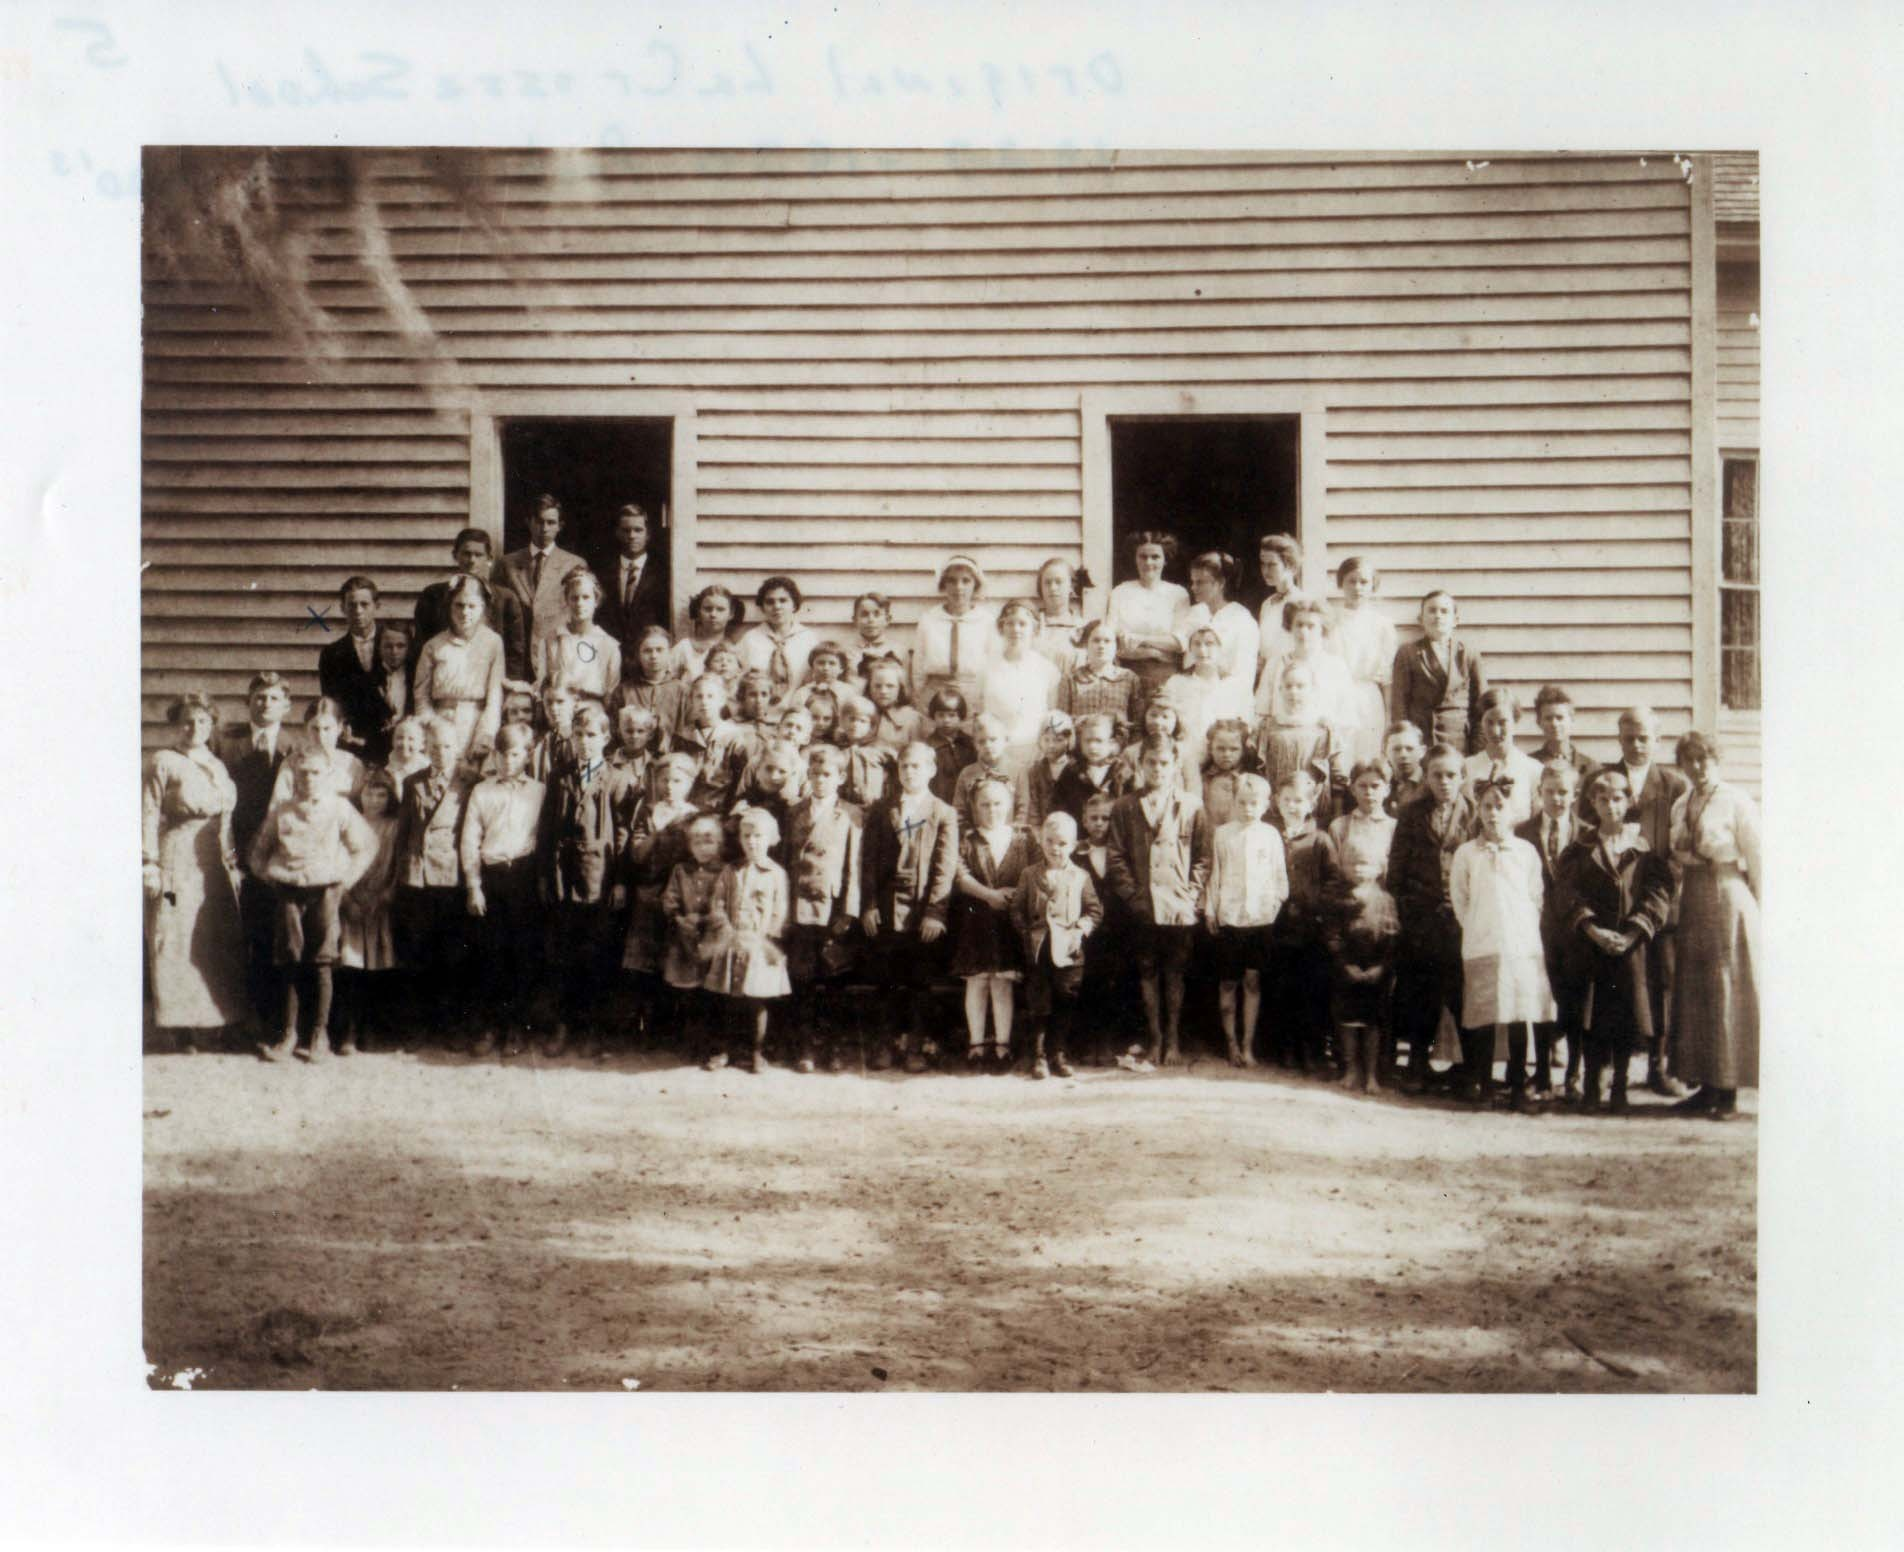 LaCrosse School 1 of 2 1920's